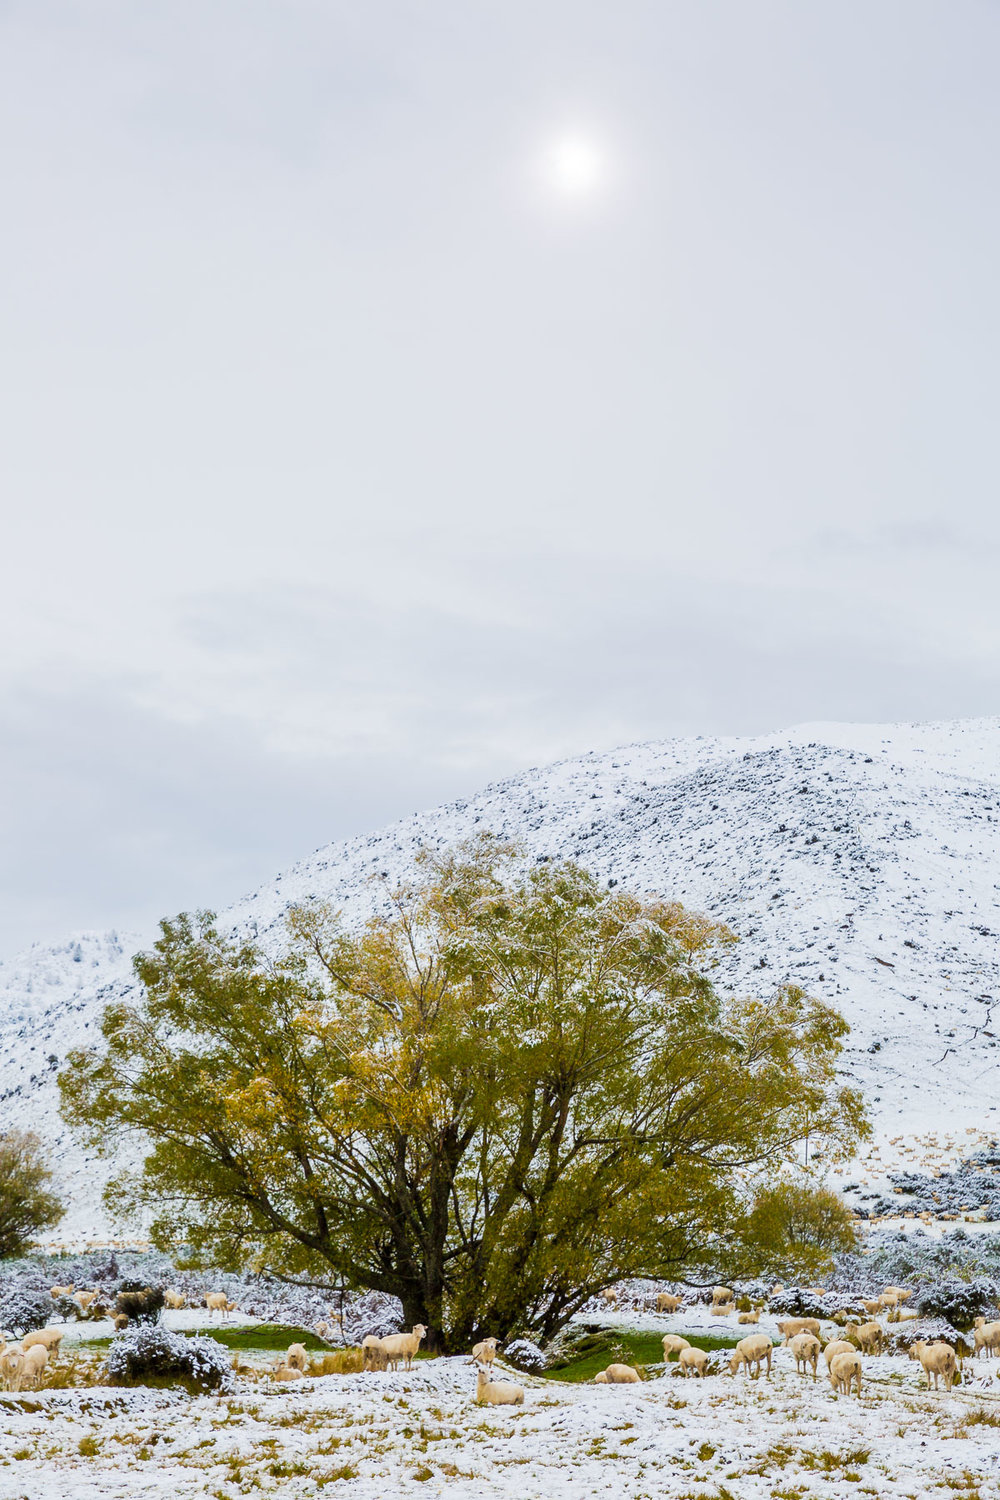 farm-morning-lake-tekapo-fresh-snow-snowfall-storm-autumn-crisp-cold-sheep.jpg